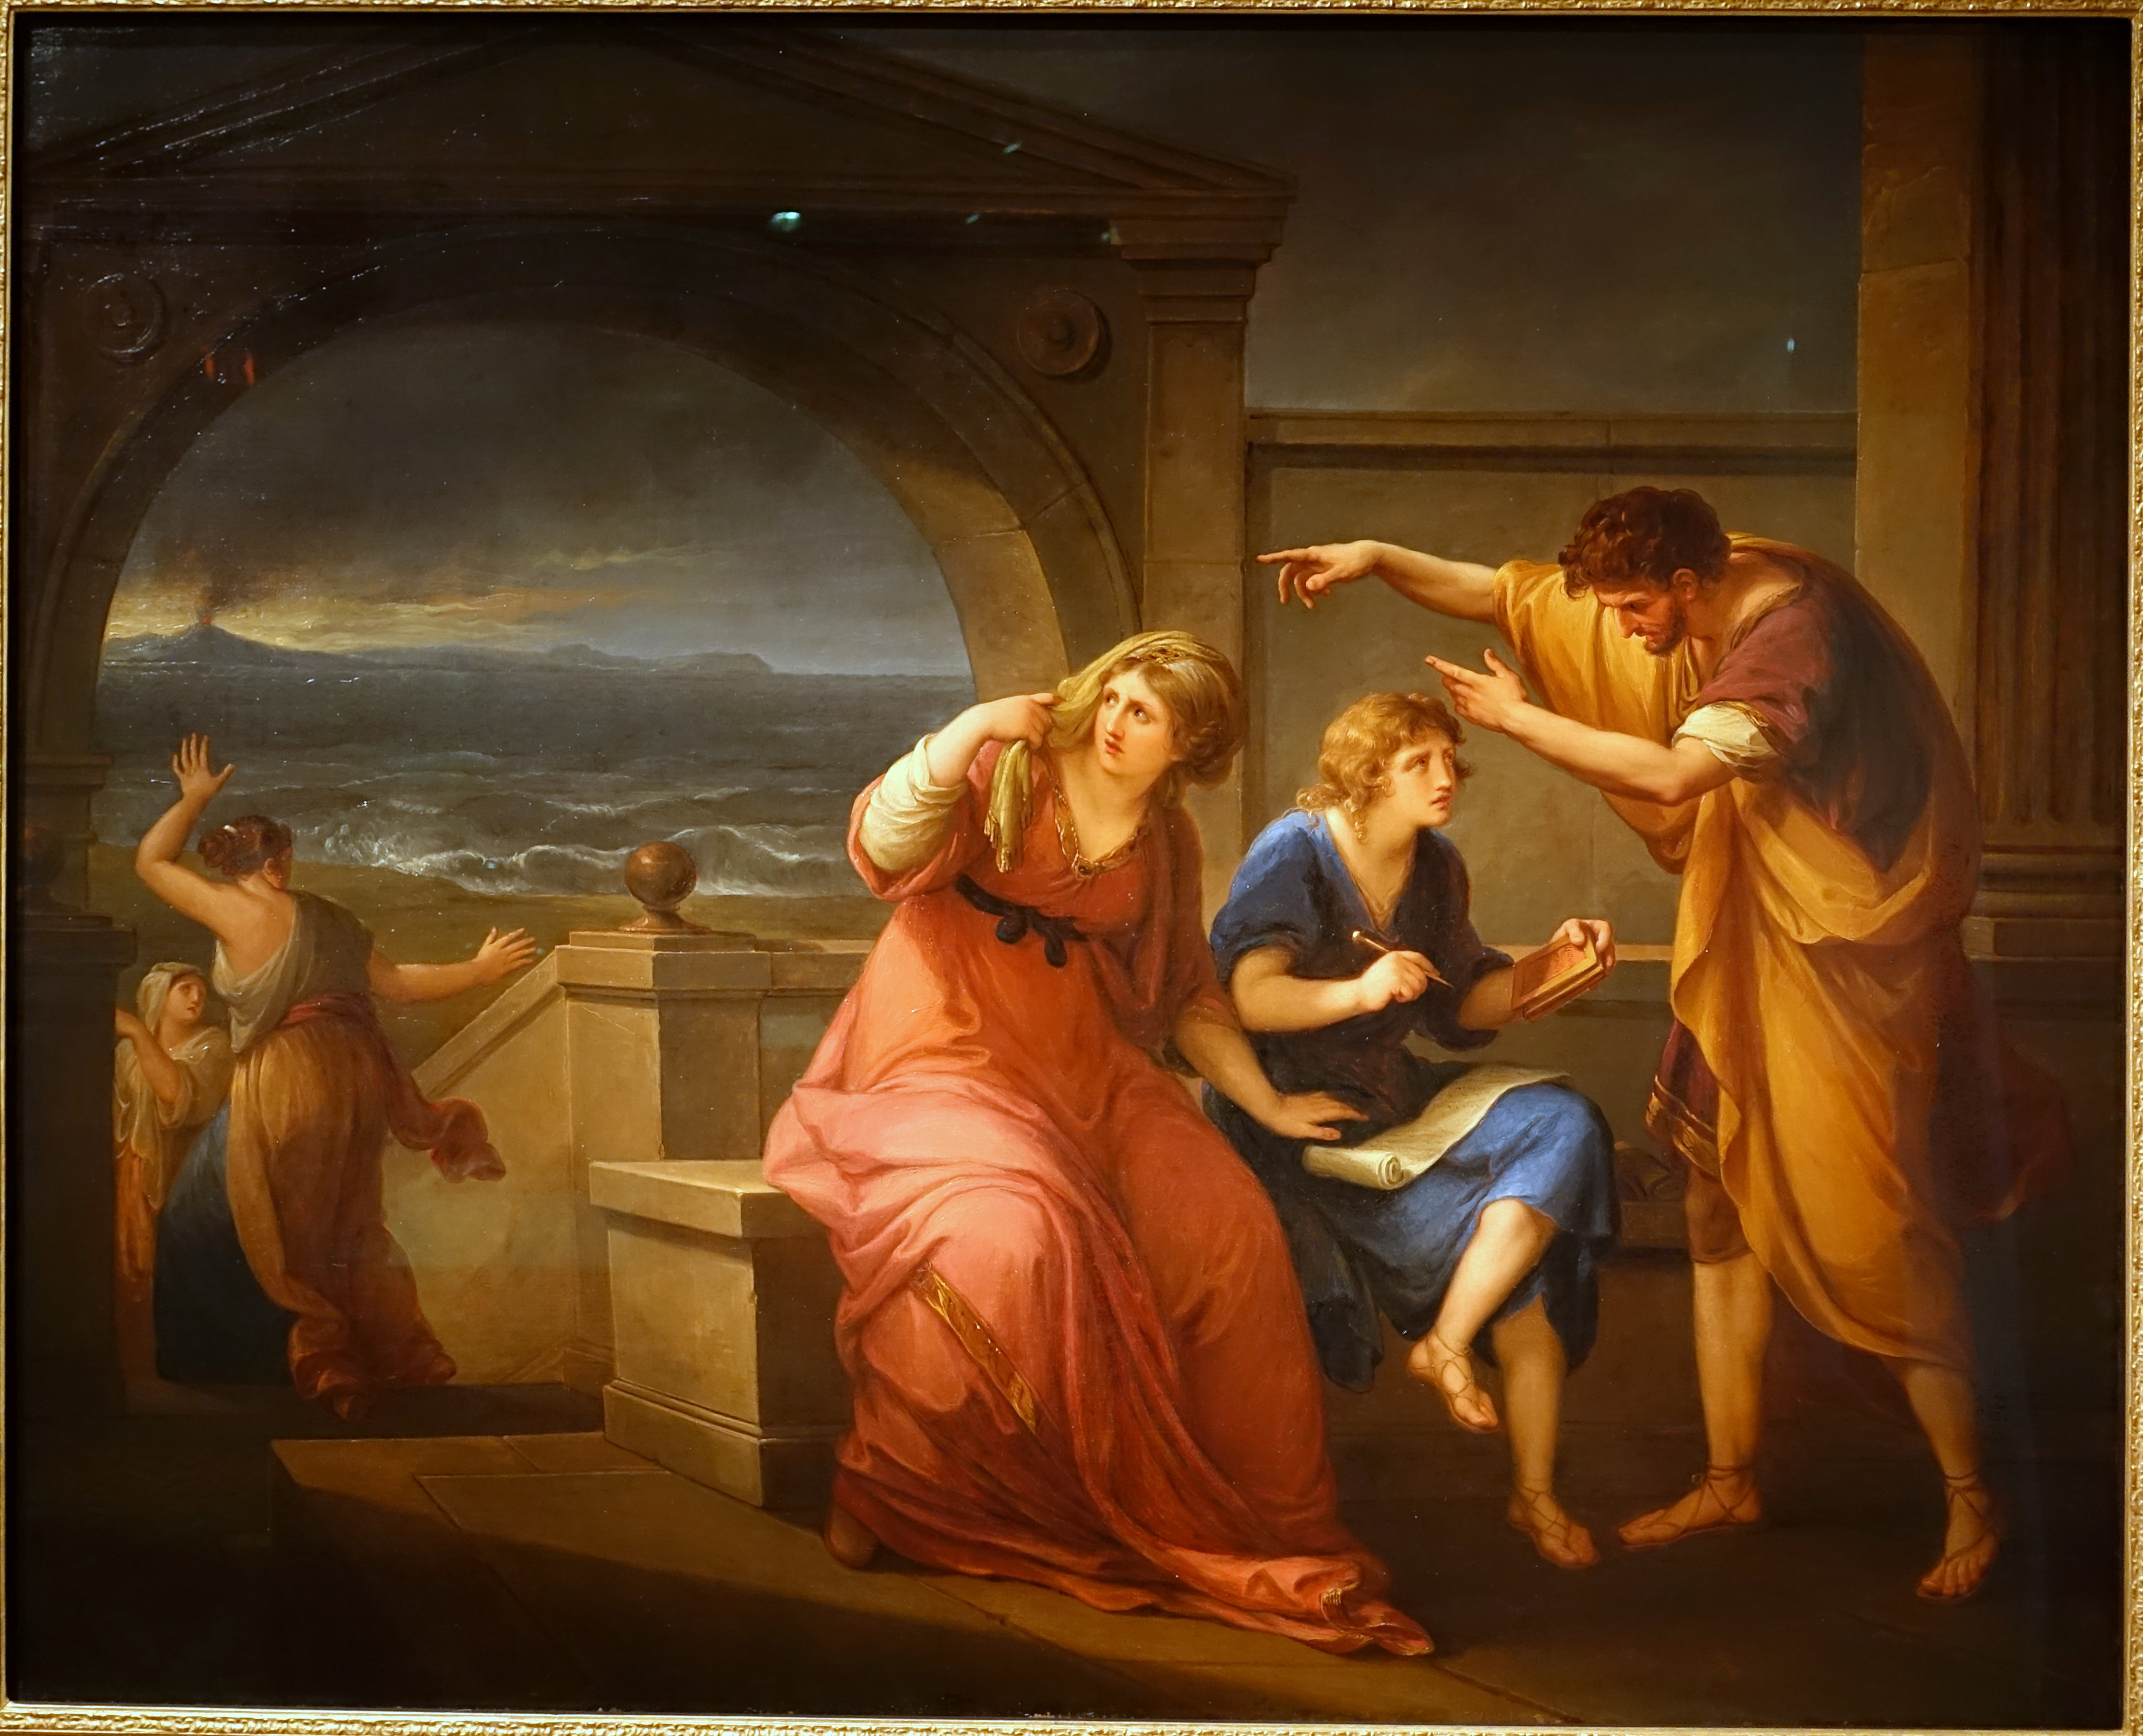 Pliny The Younger And His Mother At Misenum C A D C By Angelica Kauffmann C English C C Oil On Canvas Princeton University Art Museum Dsc